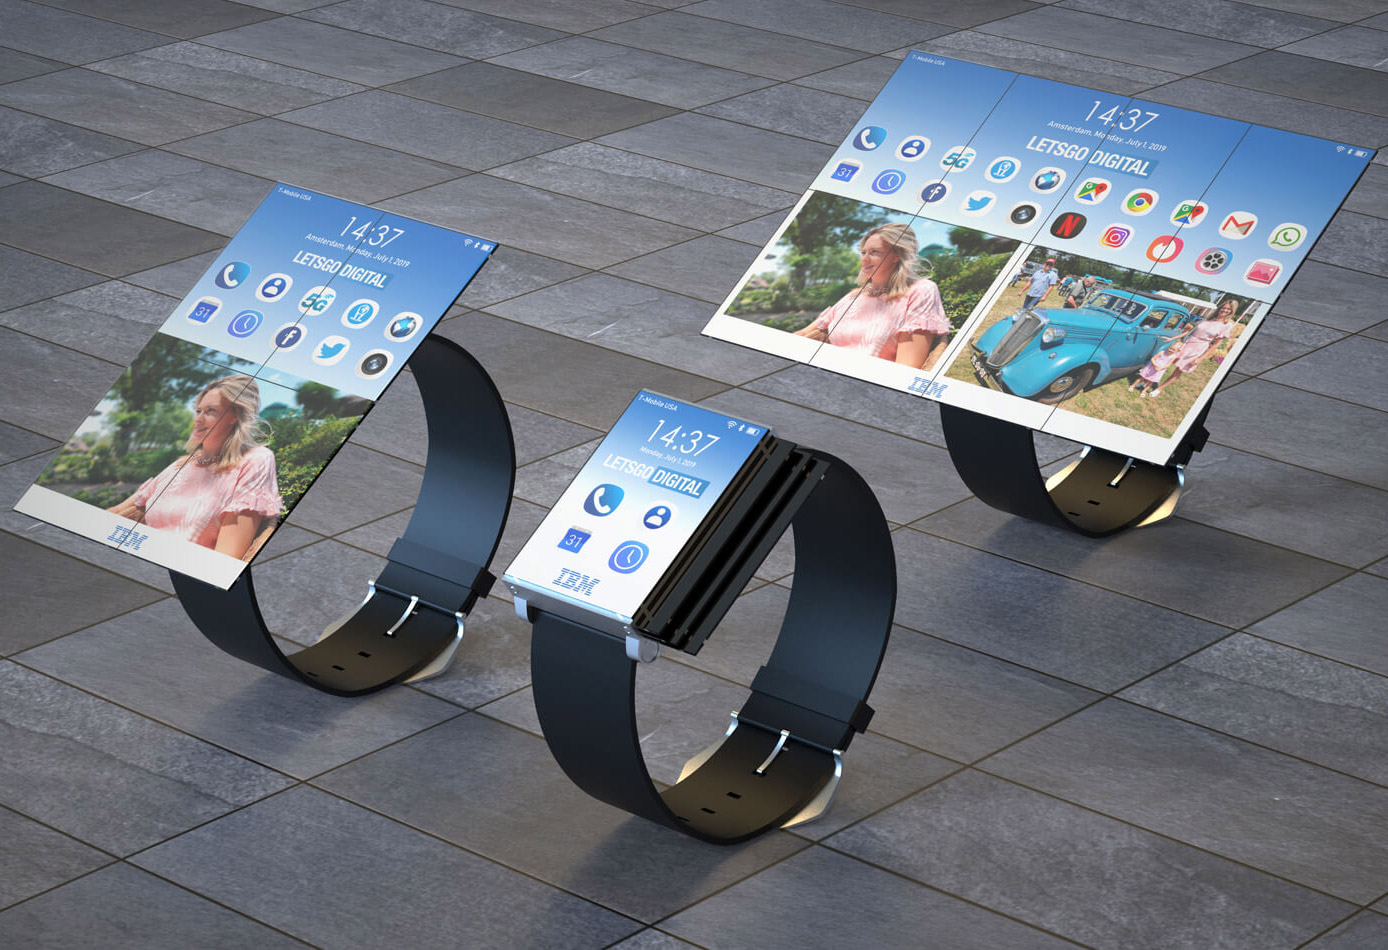 IBM Patent Smartwatch Tablet Computer